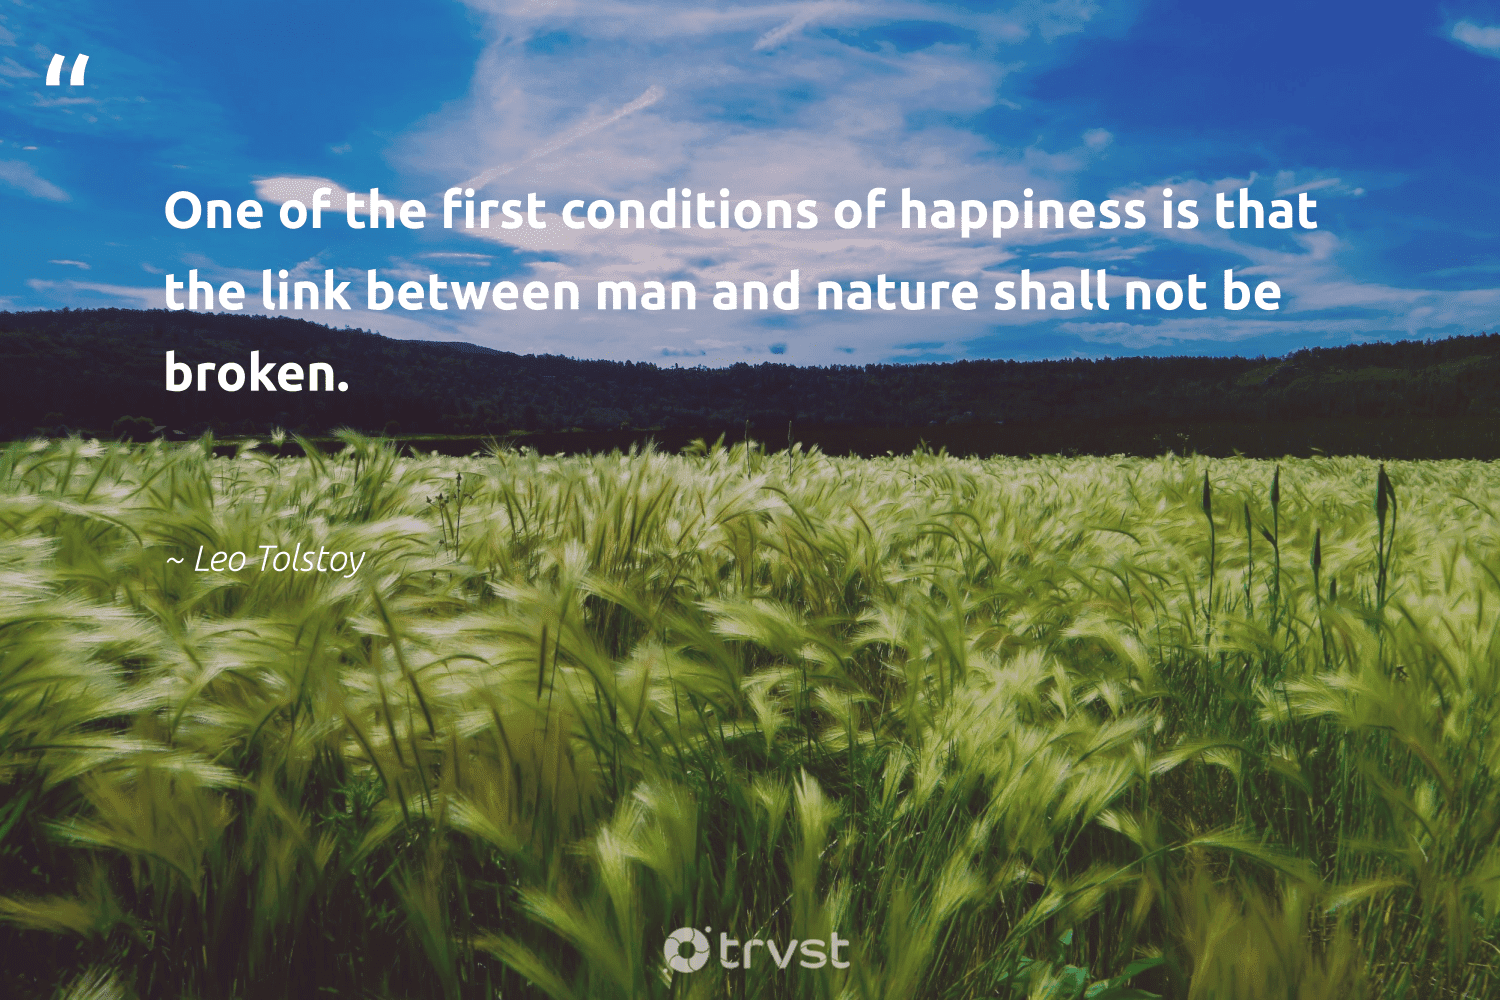 """""""One of the first conditions of happiness is that the link between man and nature shall not be broken.""""  - Leo Tolstoy #trvst #quotes #environment #nature #happiness #getoutside #sustainability #beinspired #mothernature #natureseekers #volunteer #socialchange"""